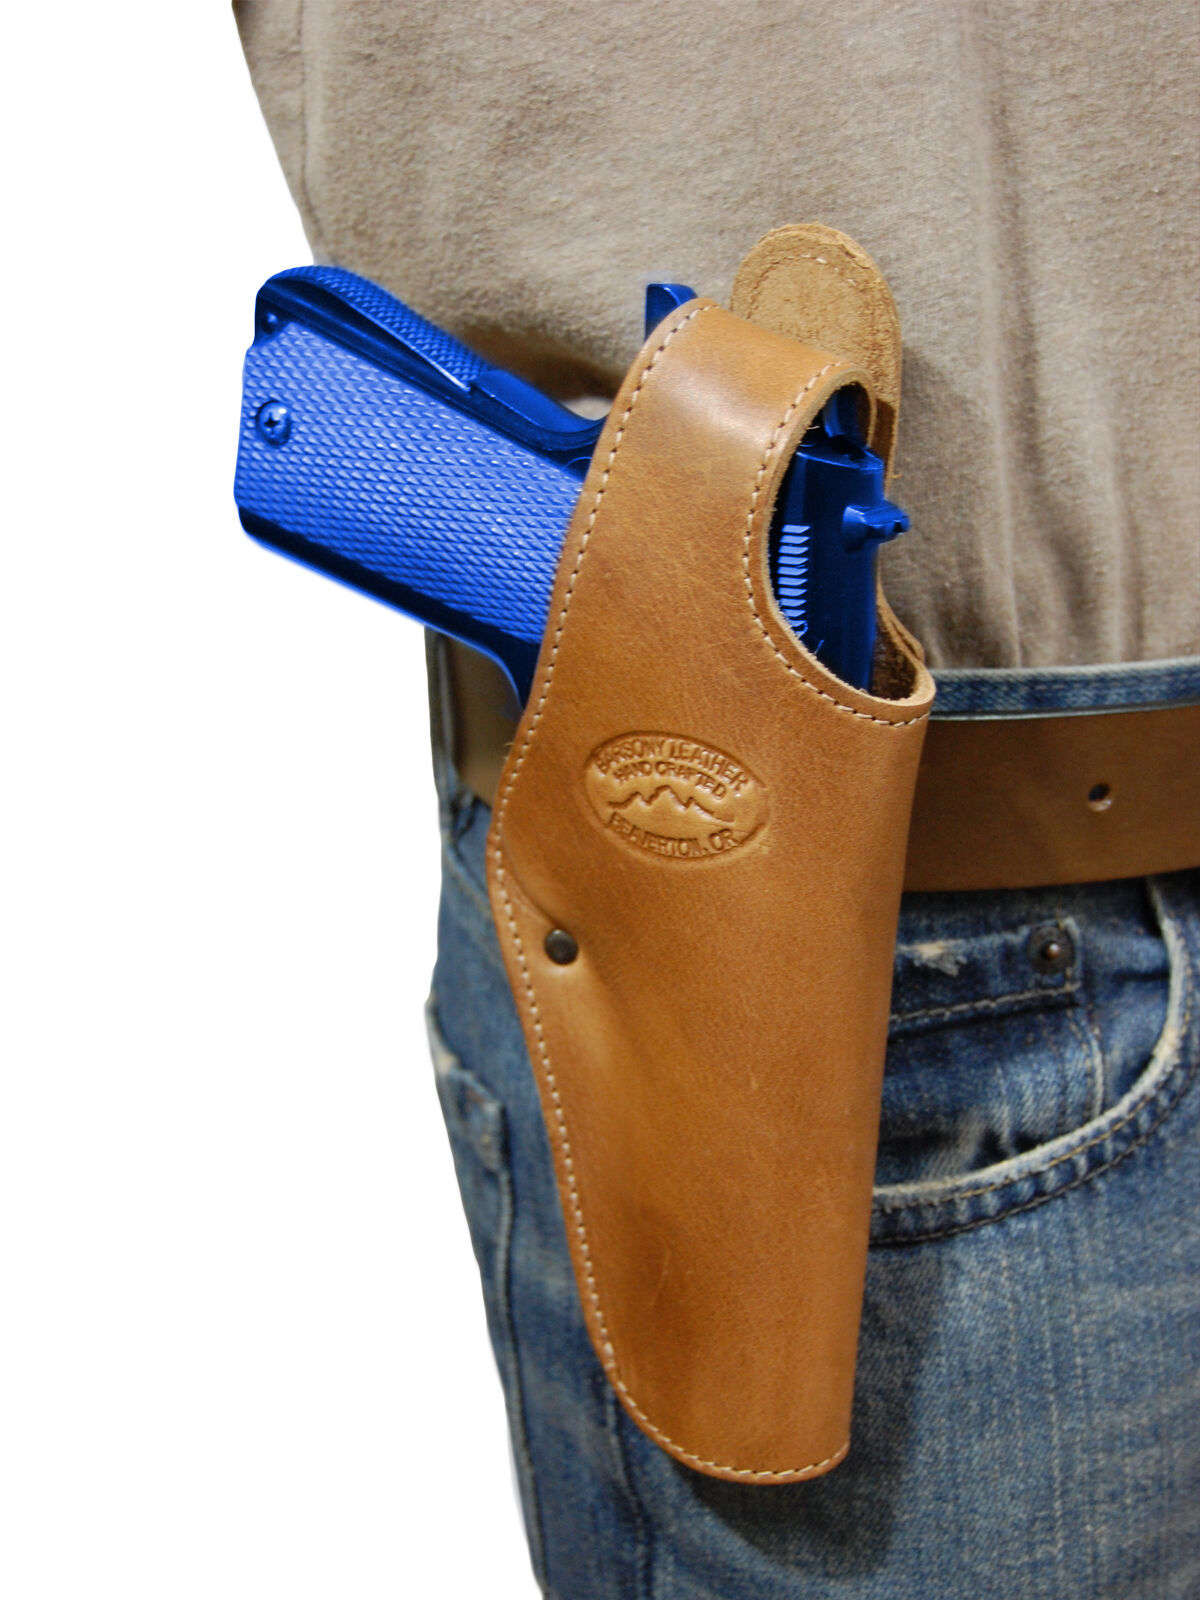 New Barsony Saddle Tan Leder Belt OWB Holster for CZ, EAA Full Größe 9mm 40 45